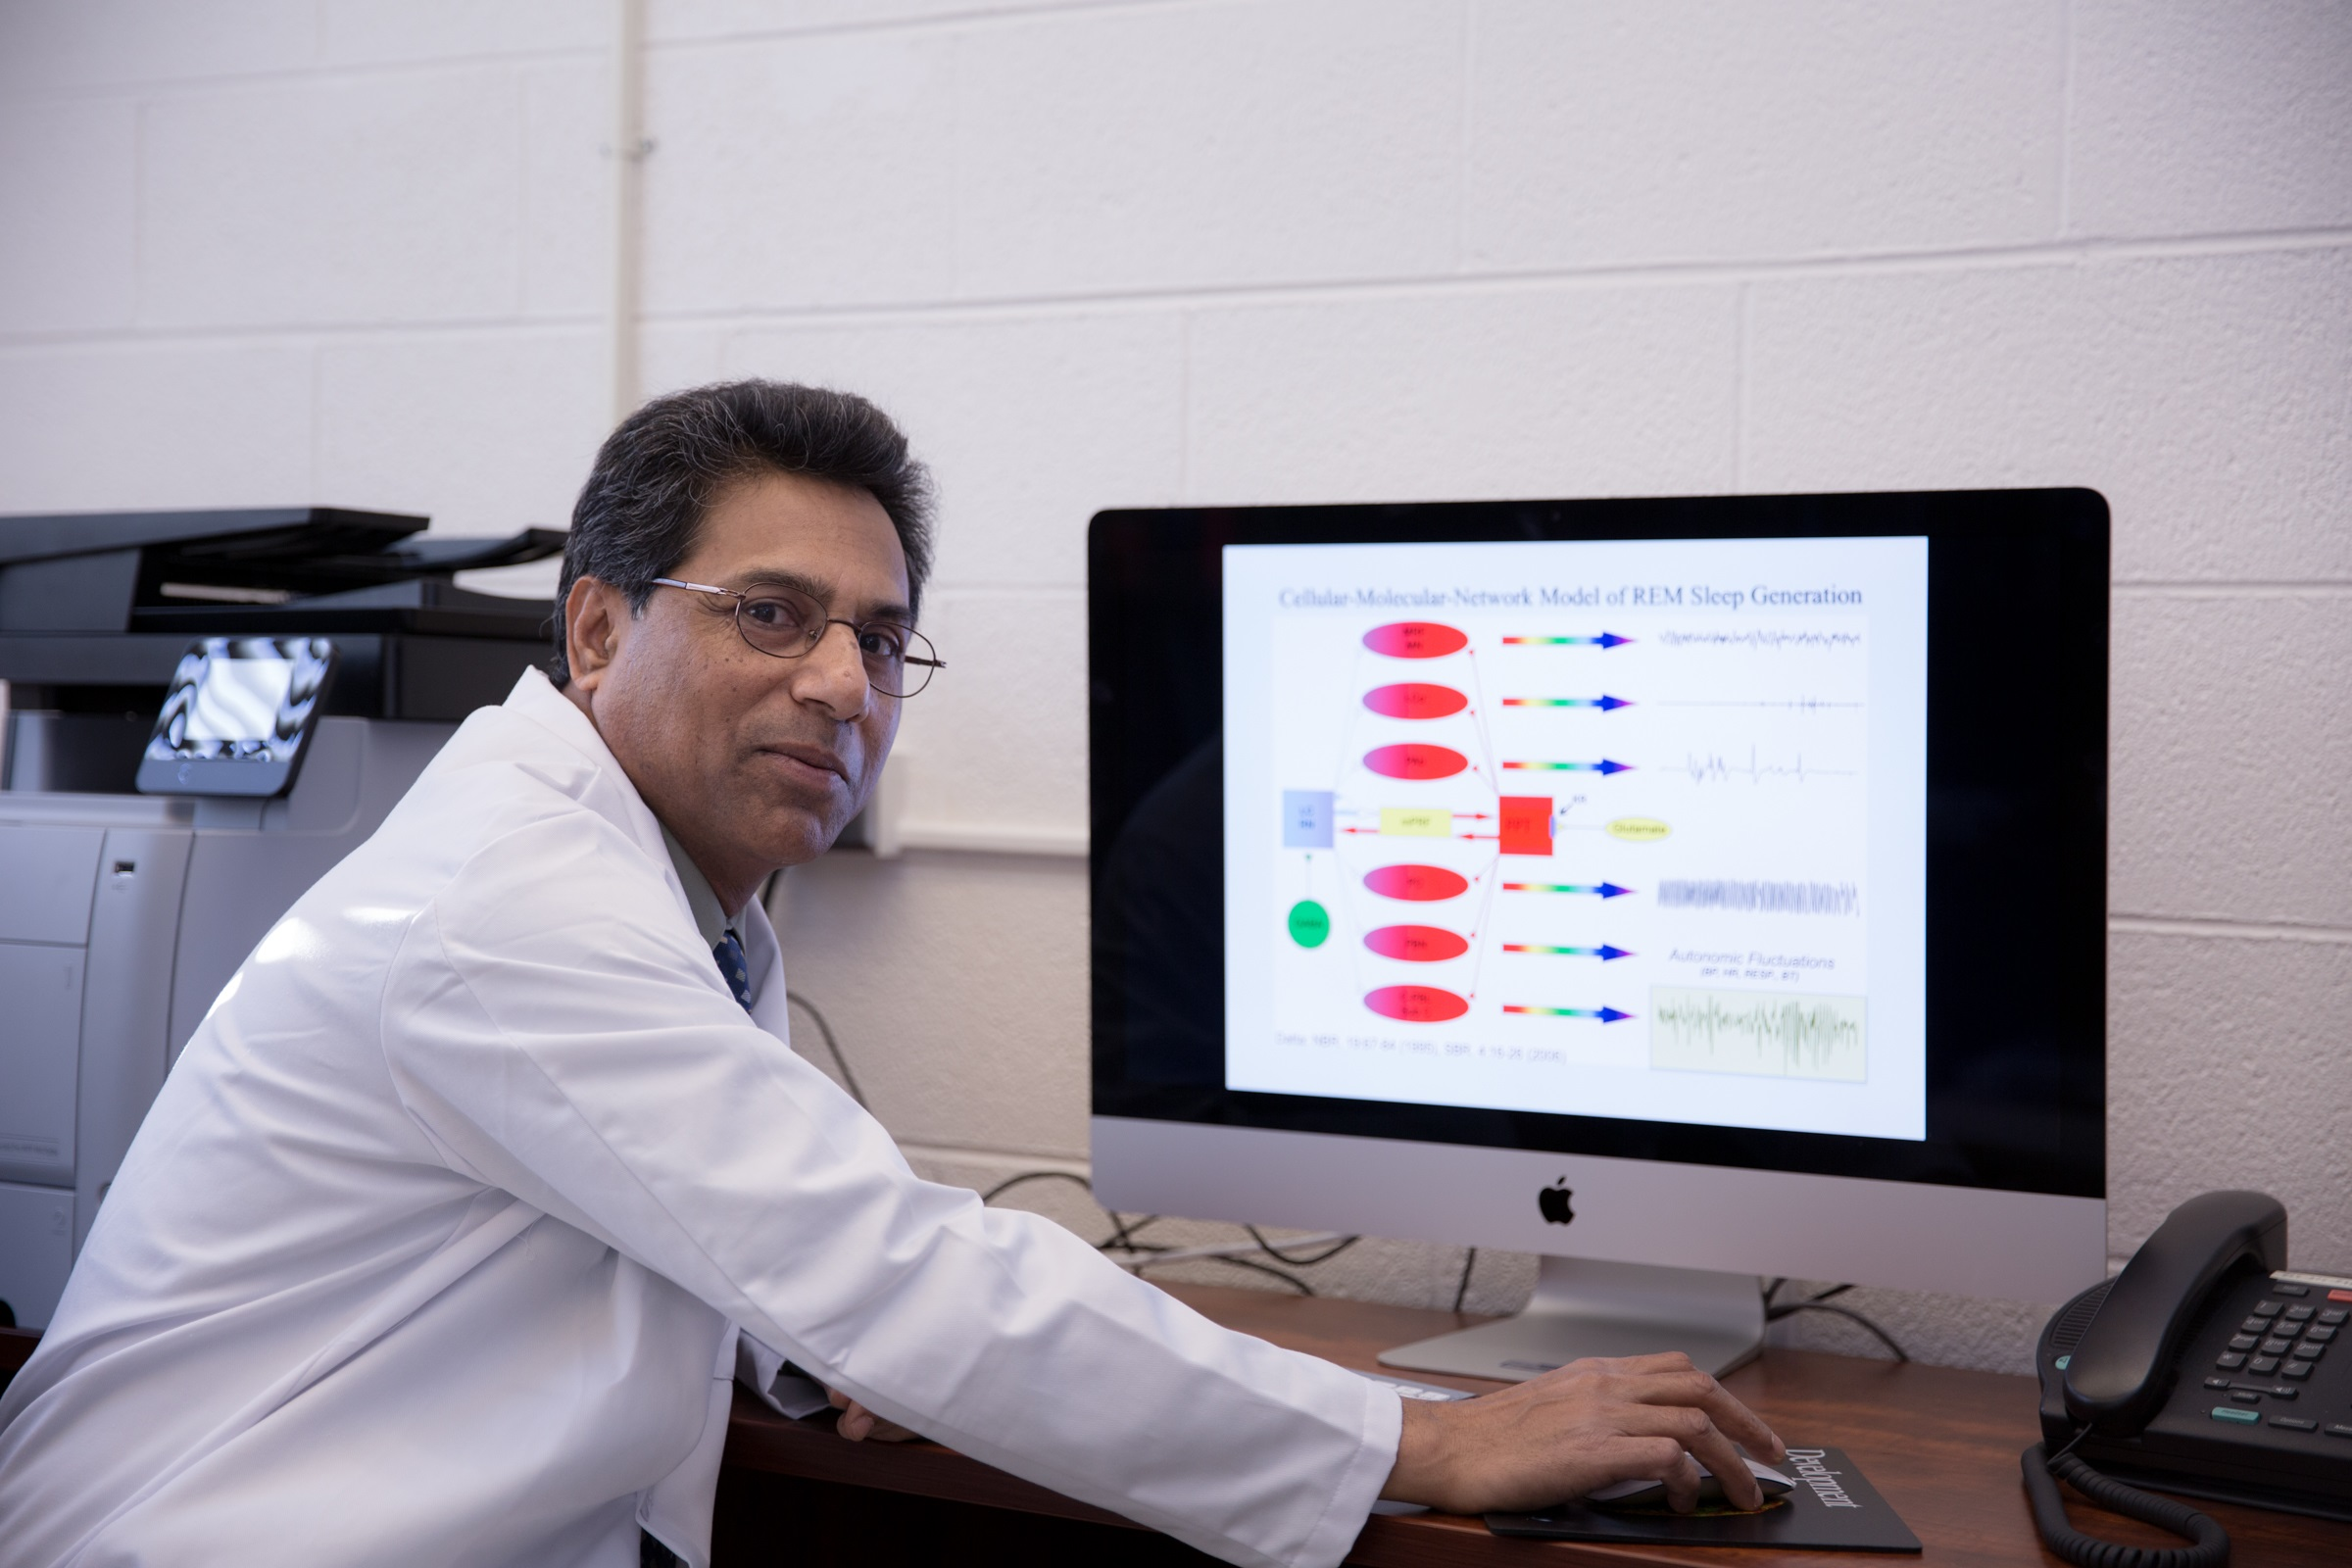 With the help of a $1.4 million NIH grant, Dr. Subimal Datta and his research team will be able to gain more insight into REM sleep and the recovery process associated with it.